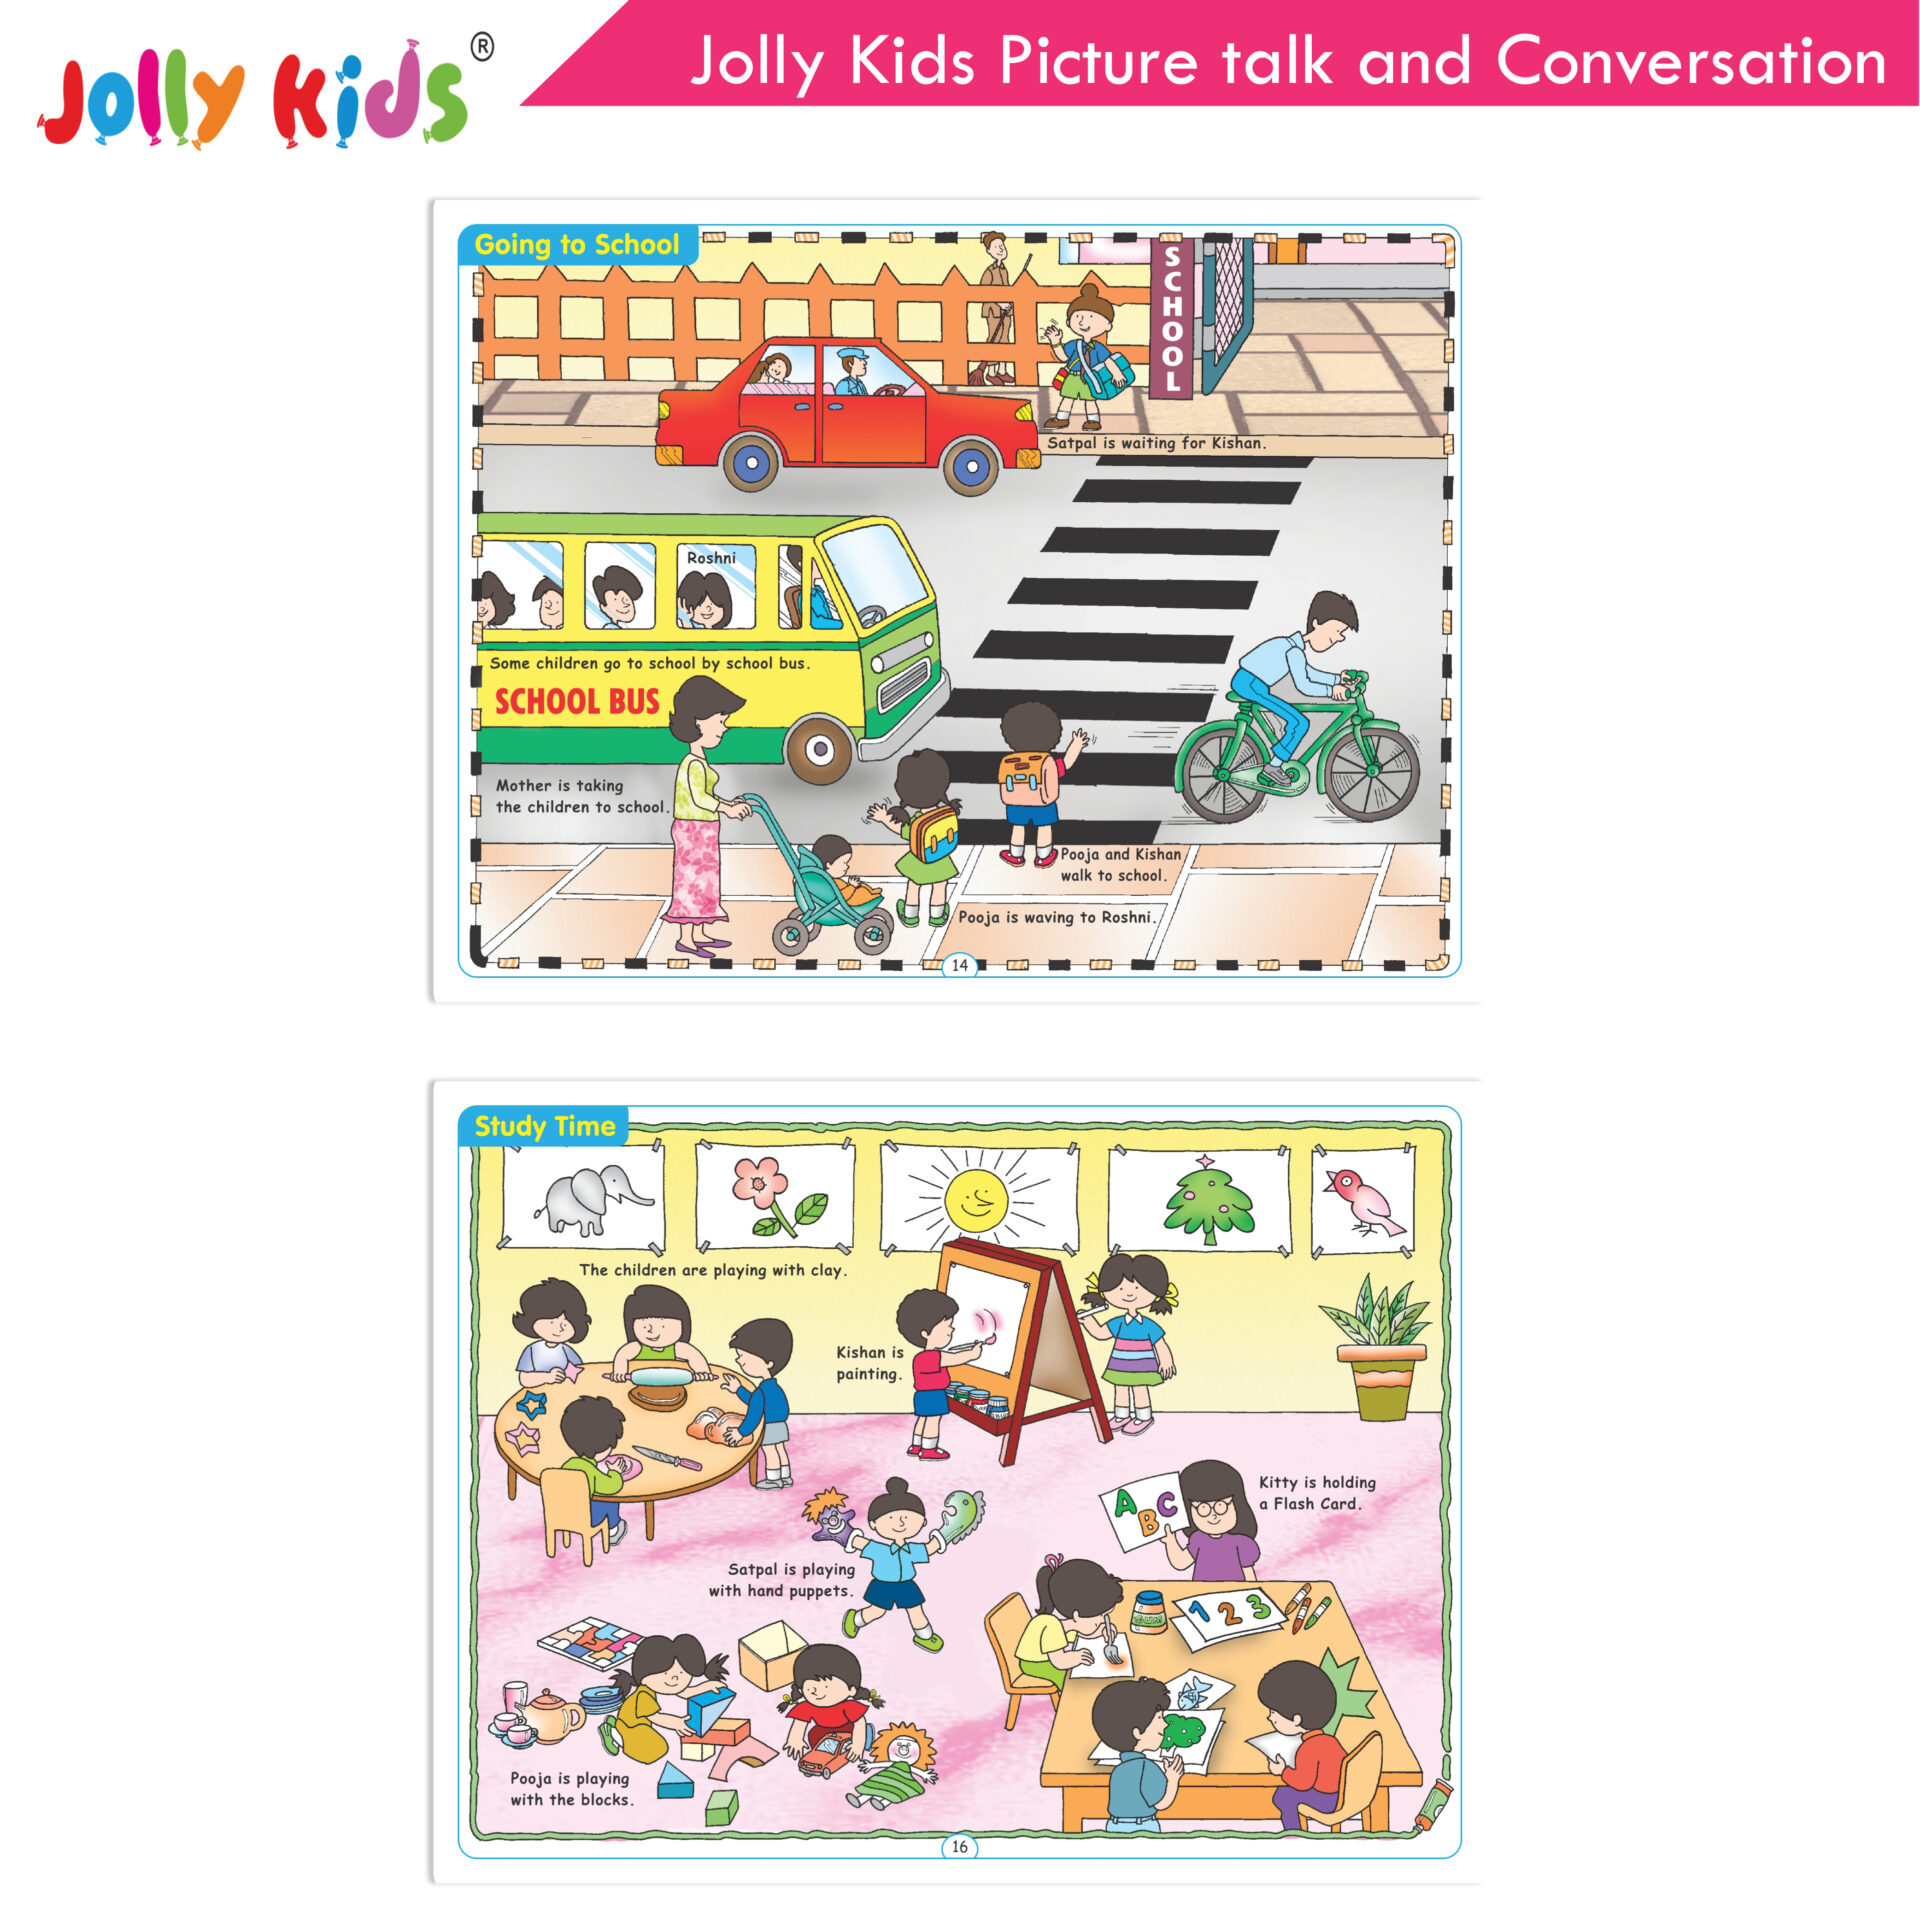 Jolly Kids Picture talk and conversation  4